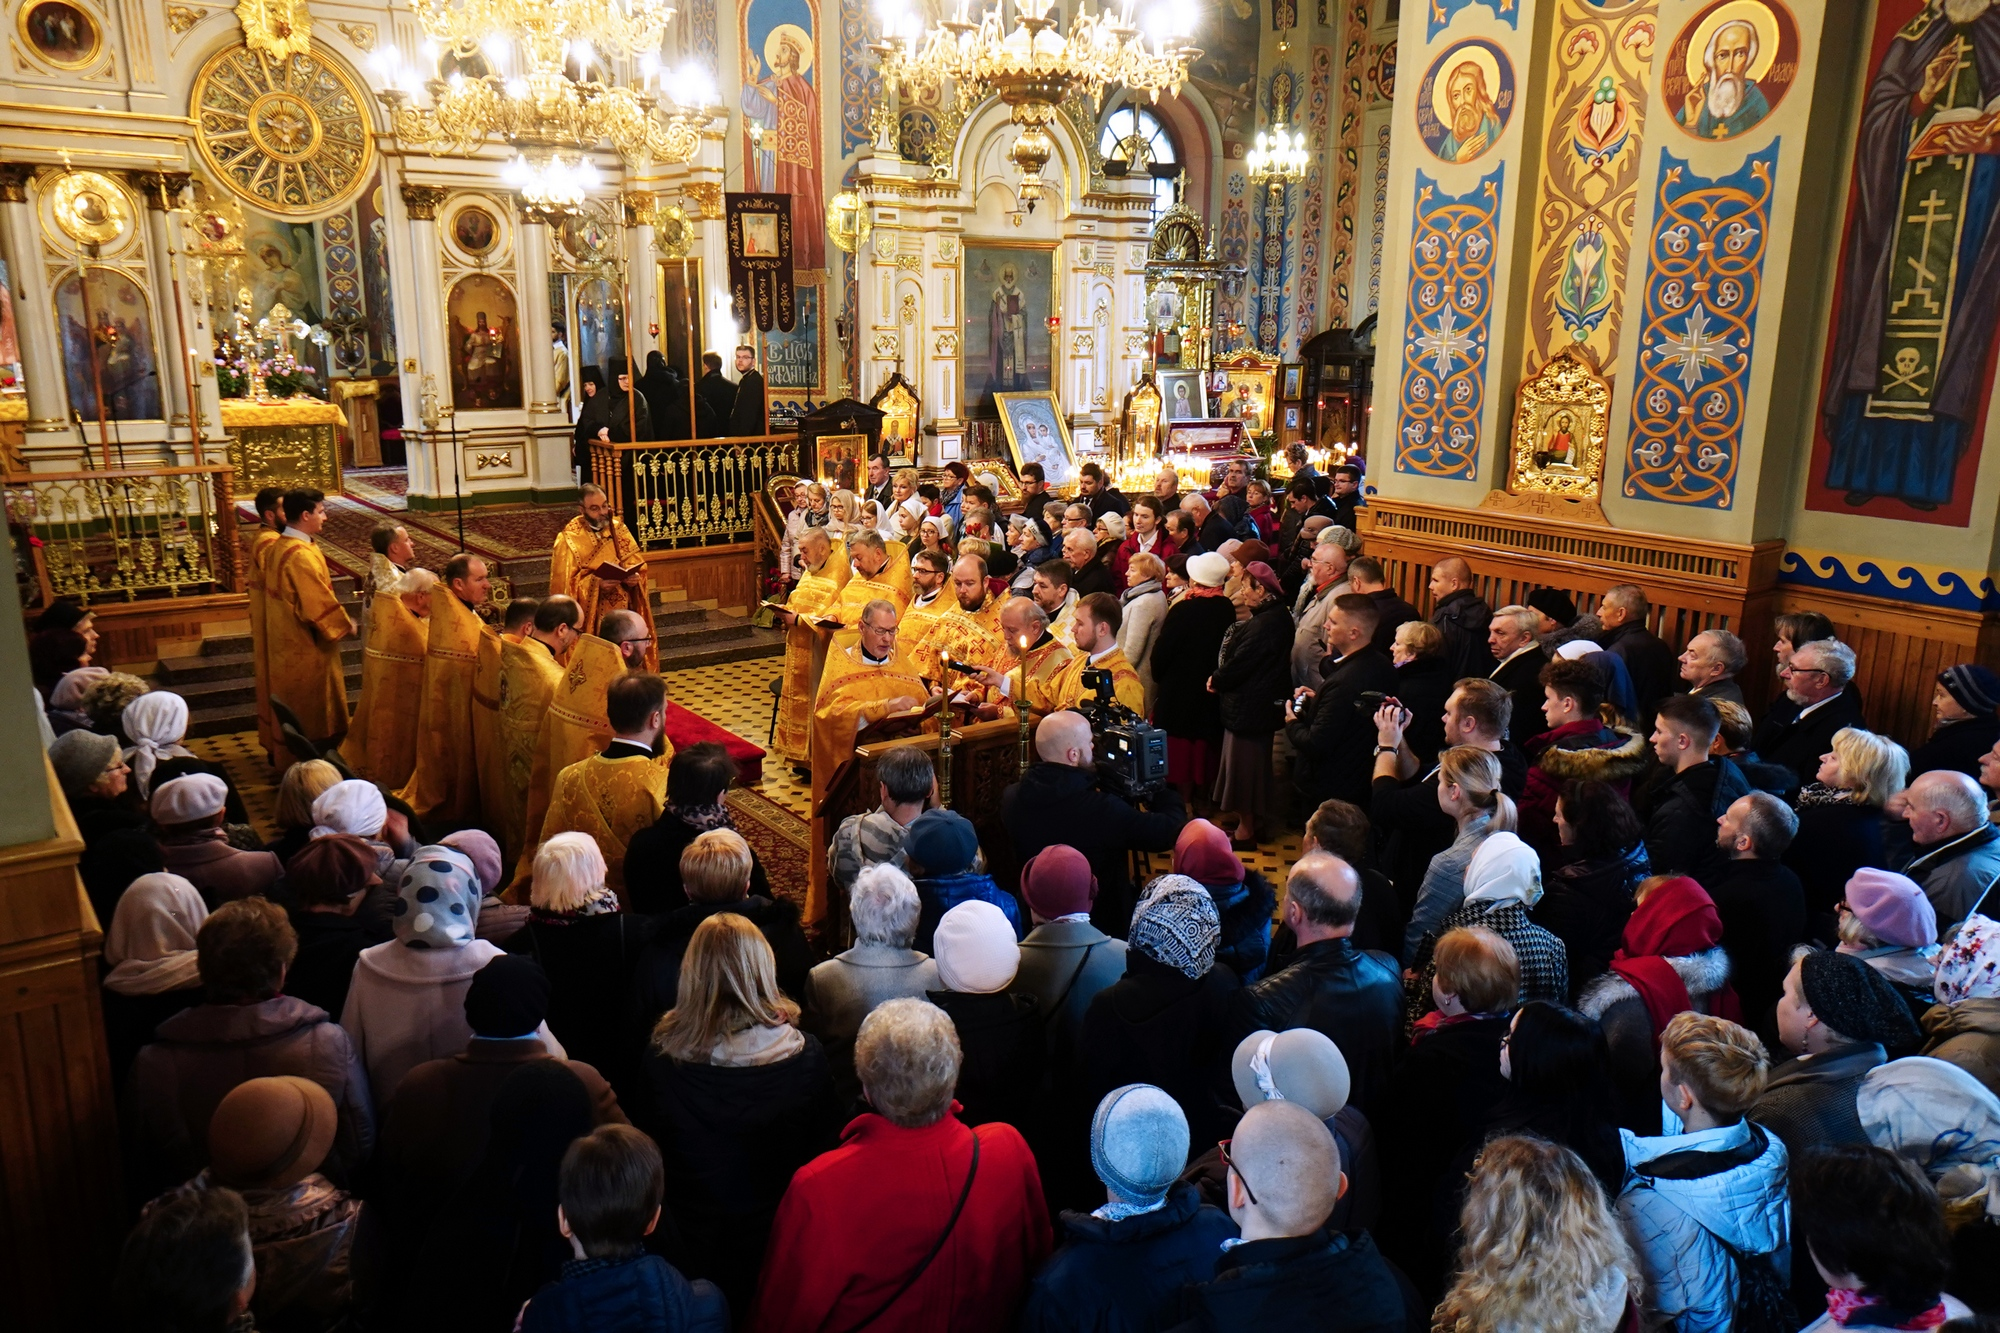 Apostle Jacob Divine Liturgy in St. Nicholas Cathedral in Białystok